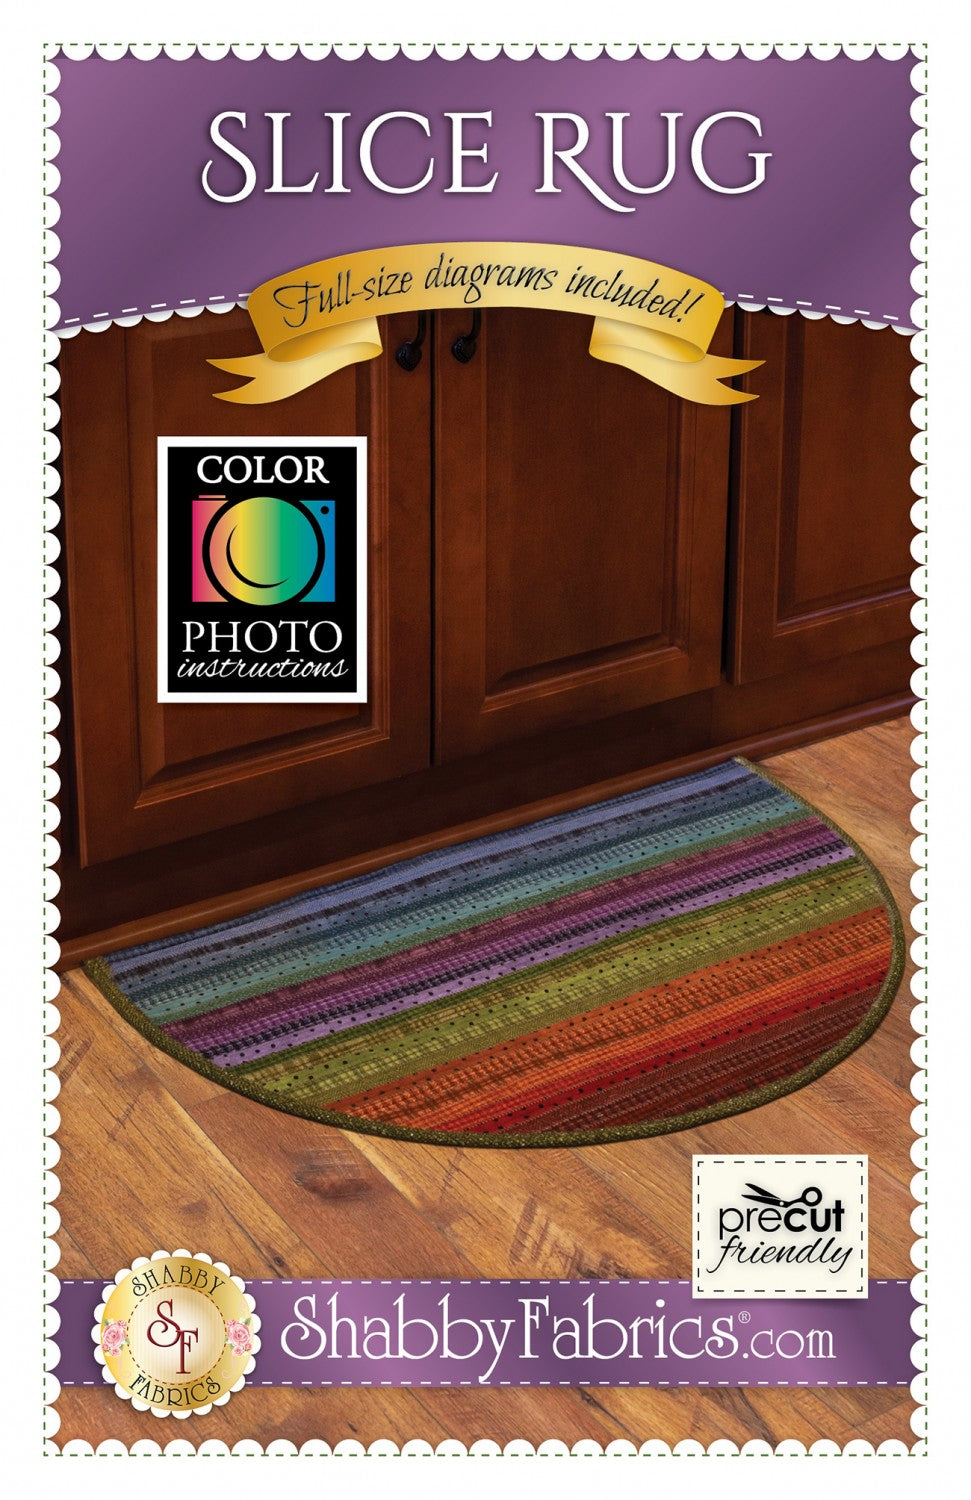 Slice Rug - Jelly Roll Rug